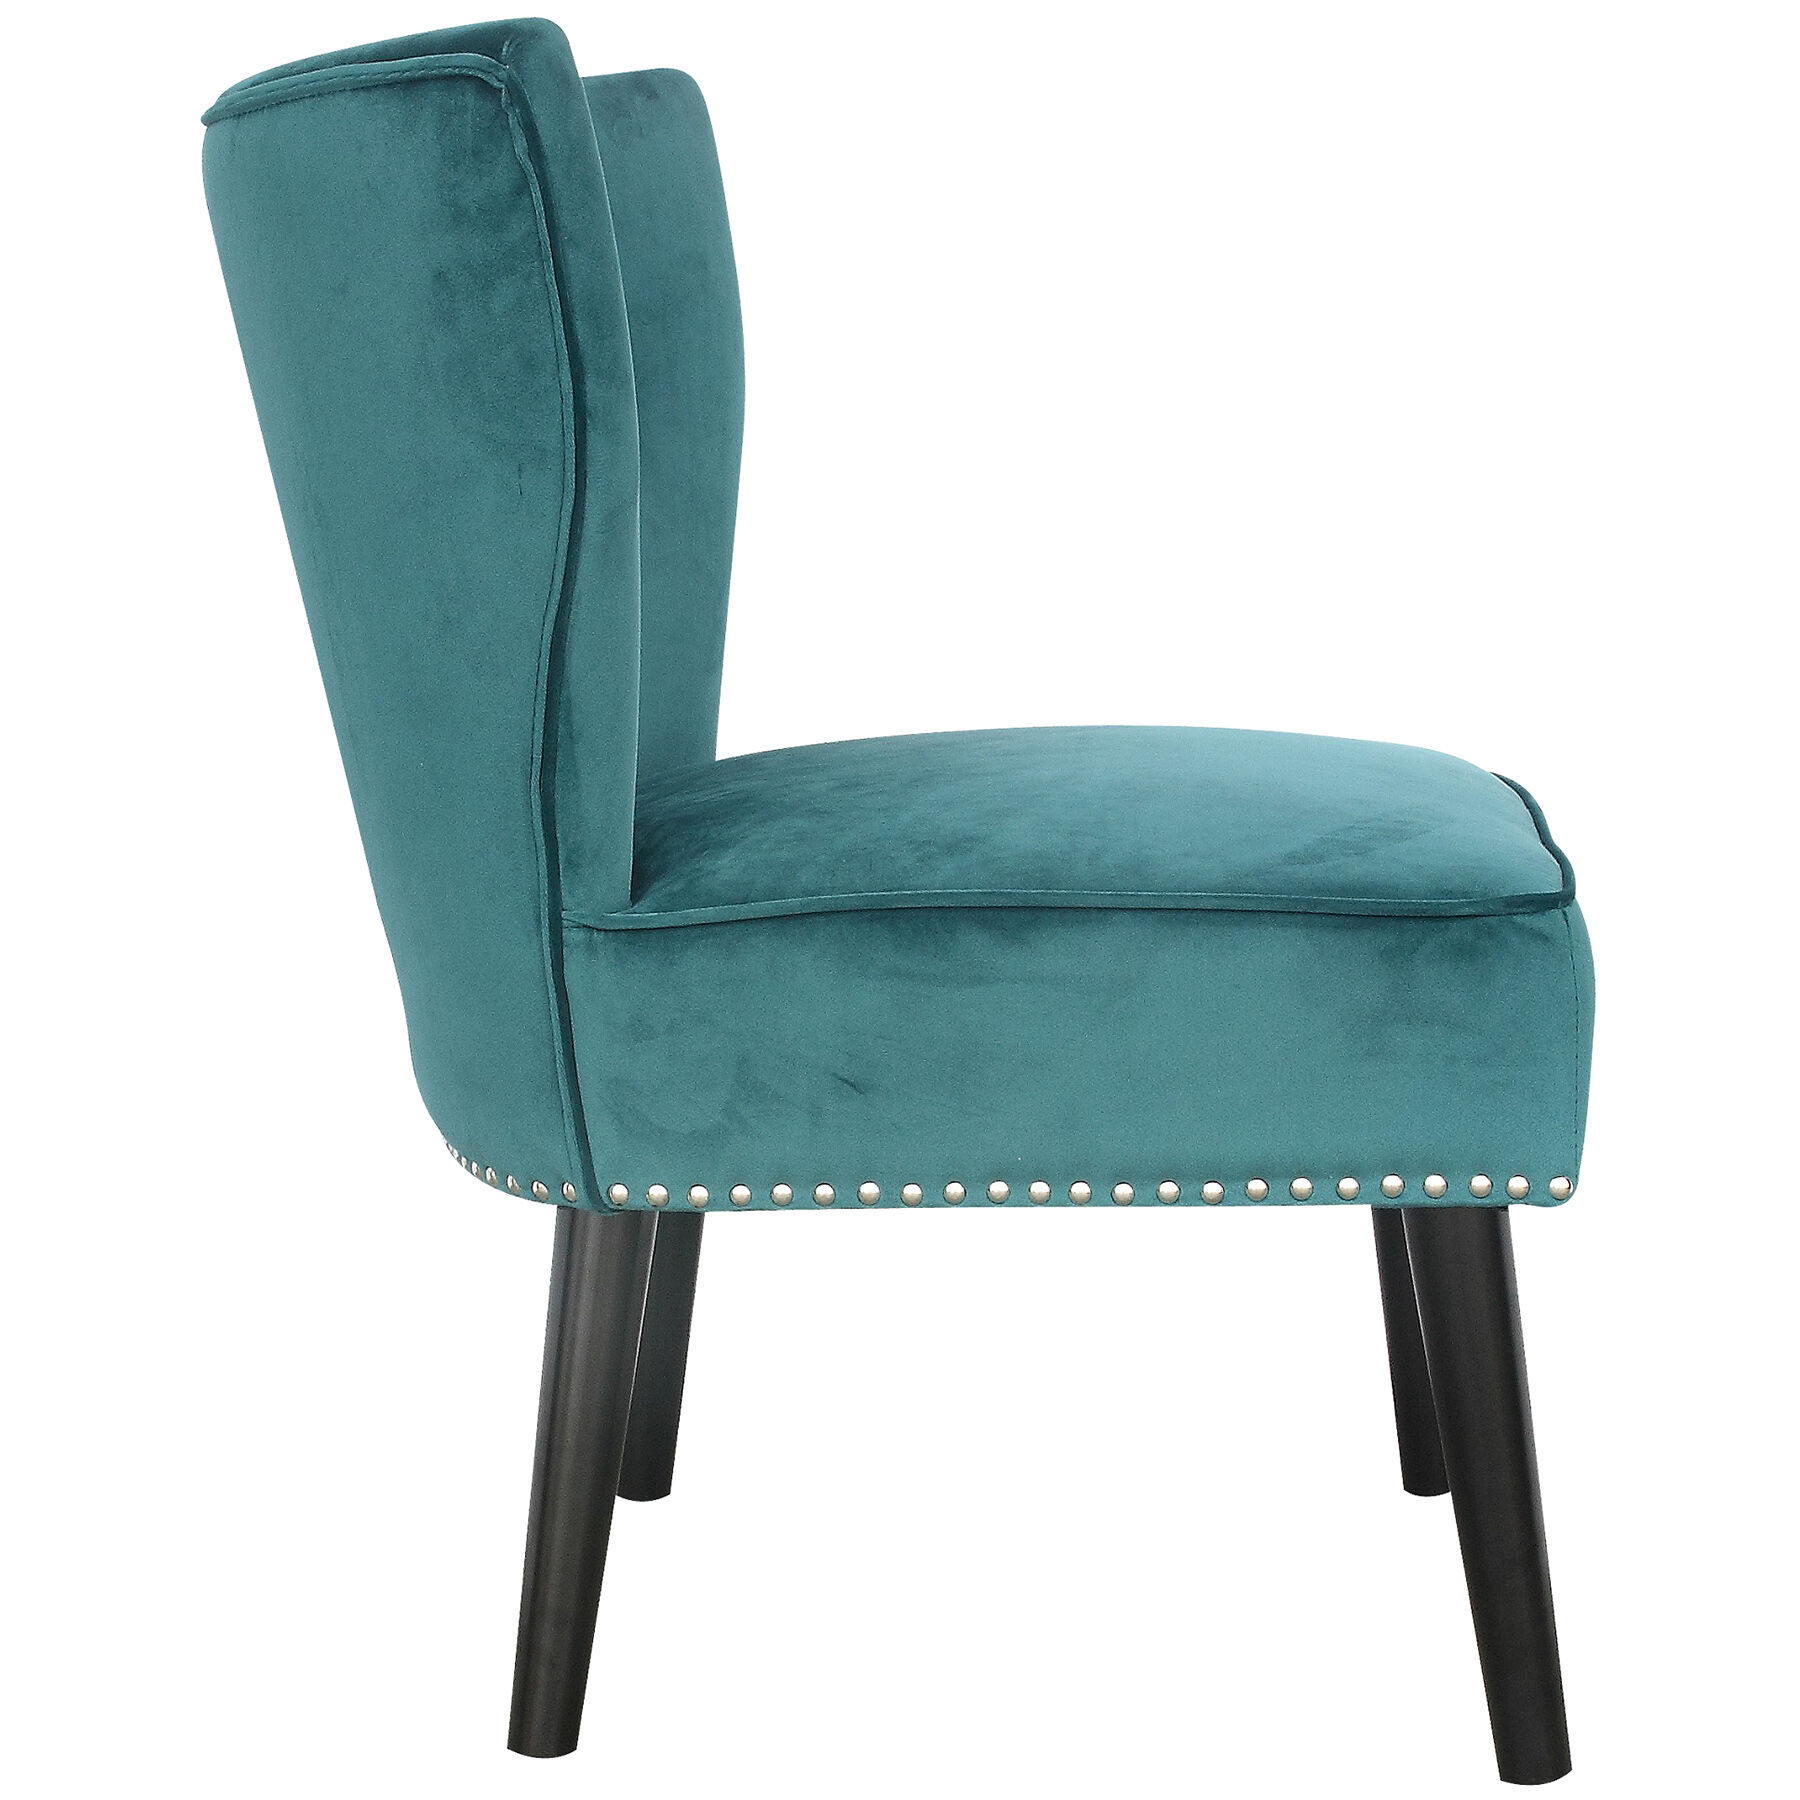 Teal Tufted Accent Chair